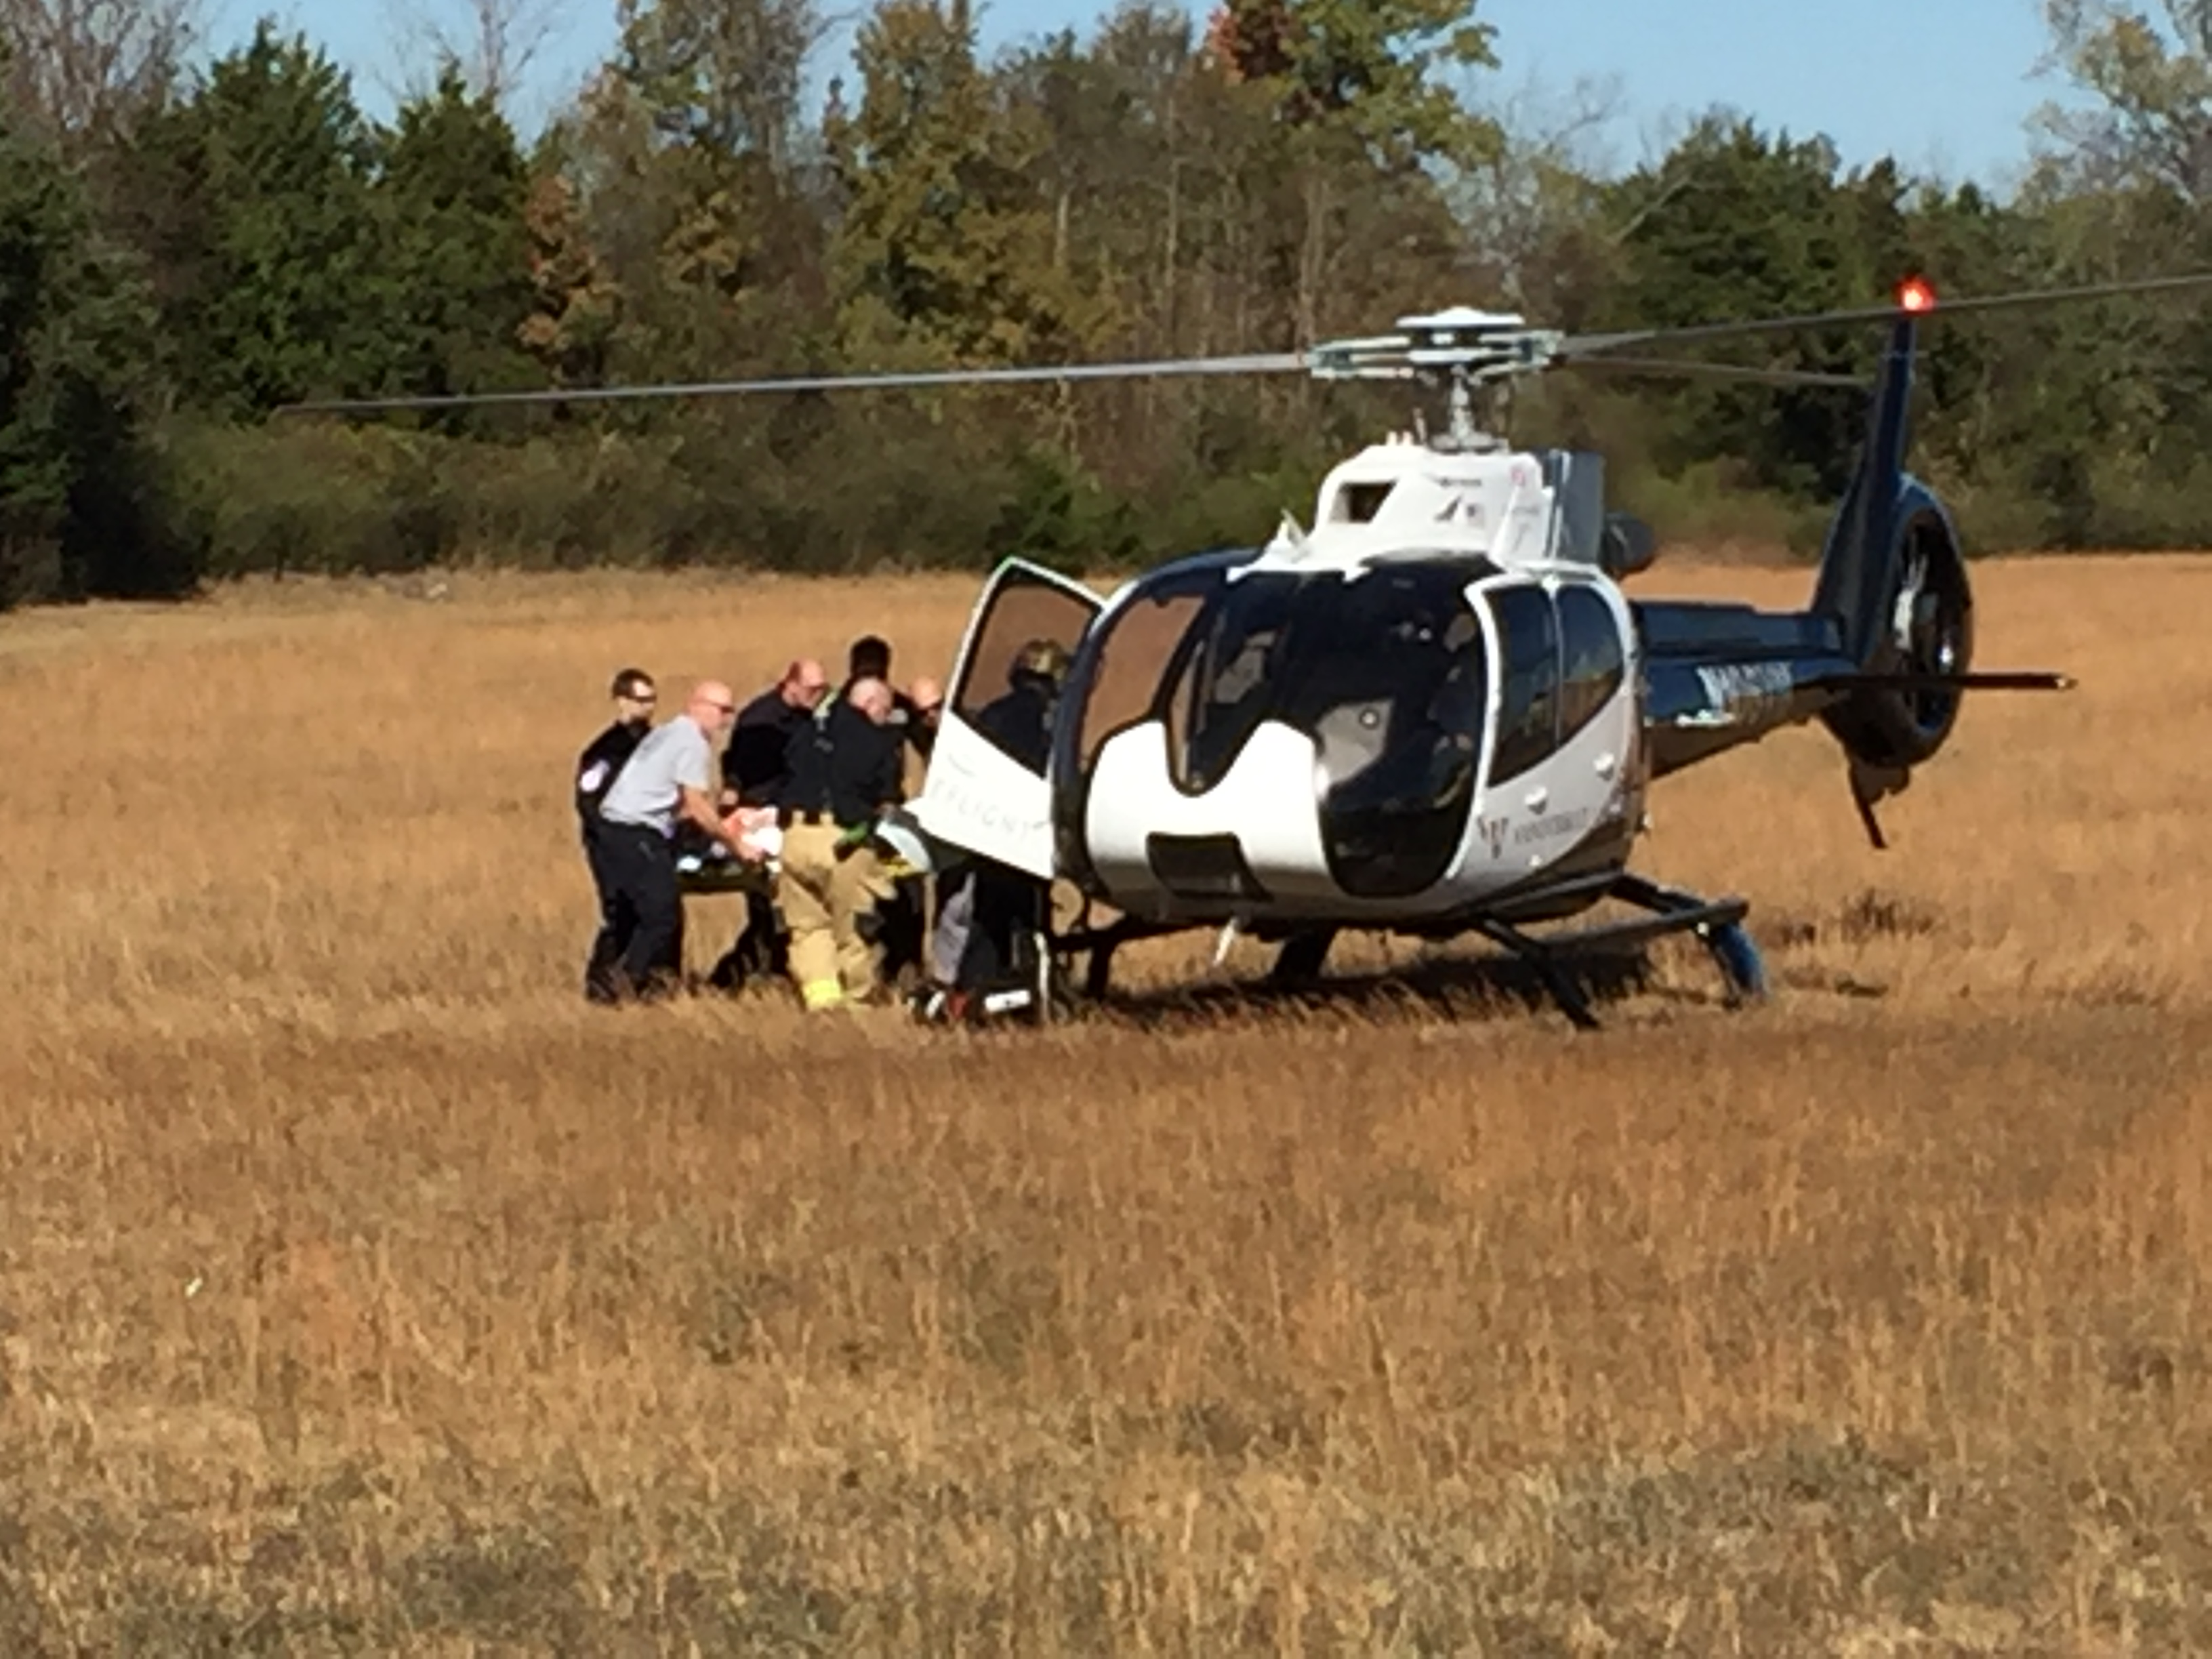 Missing man found in vehicle in Murfreesboro - Flown to Vanderbilt